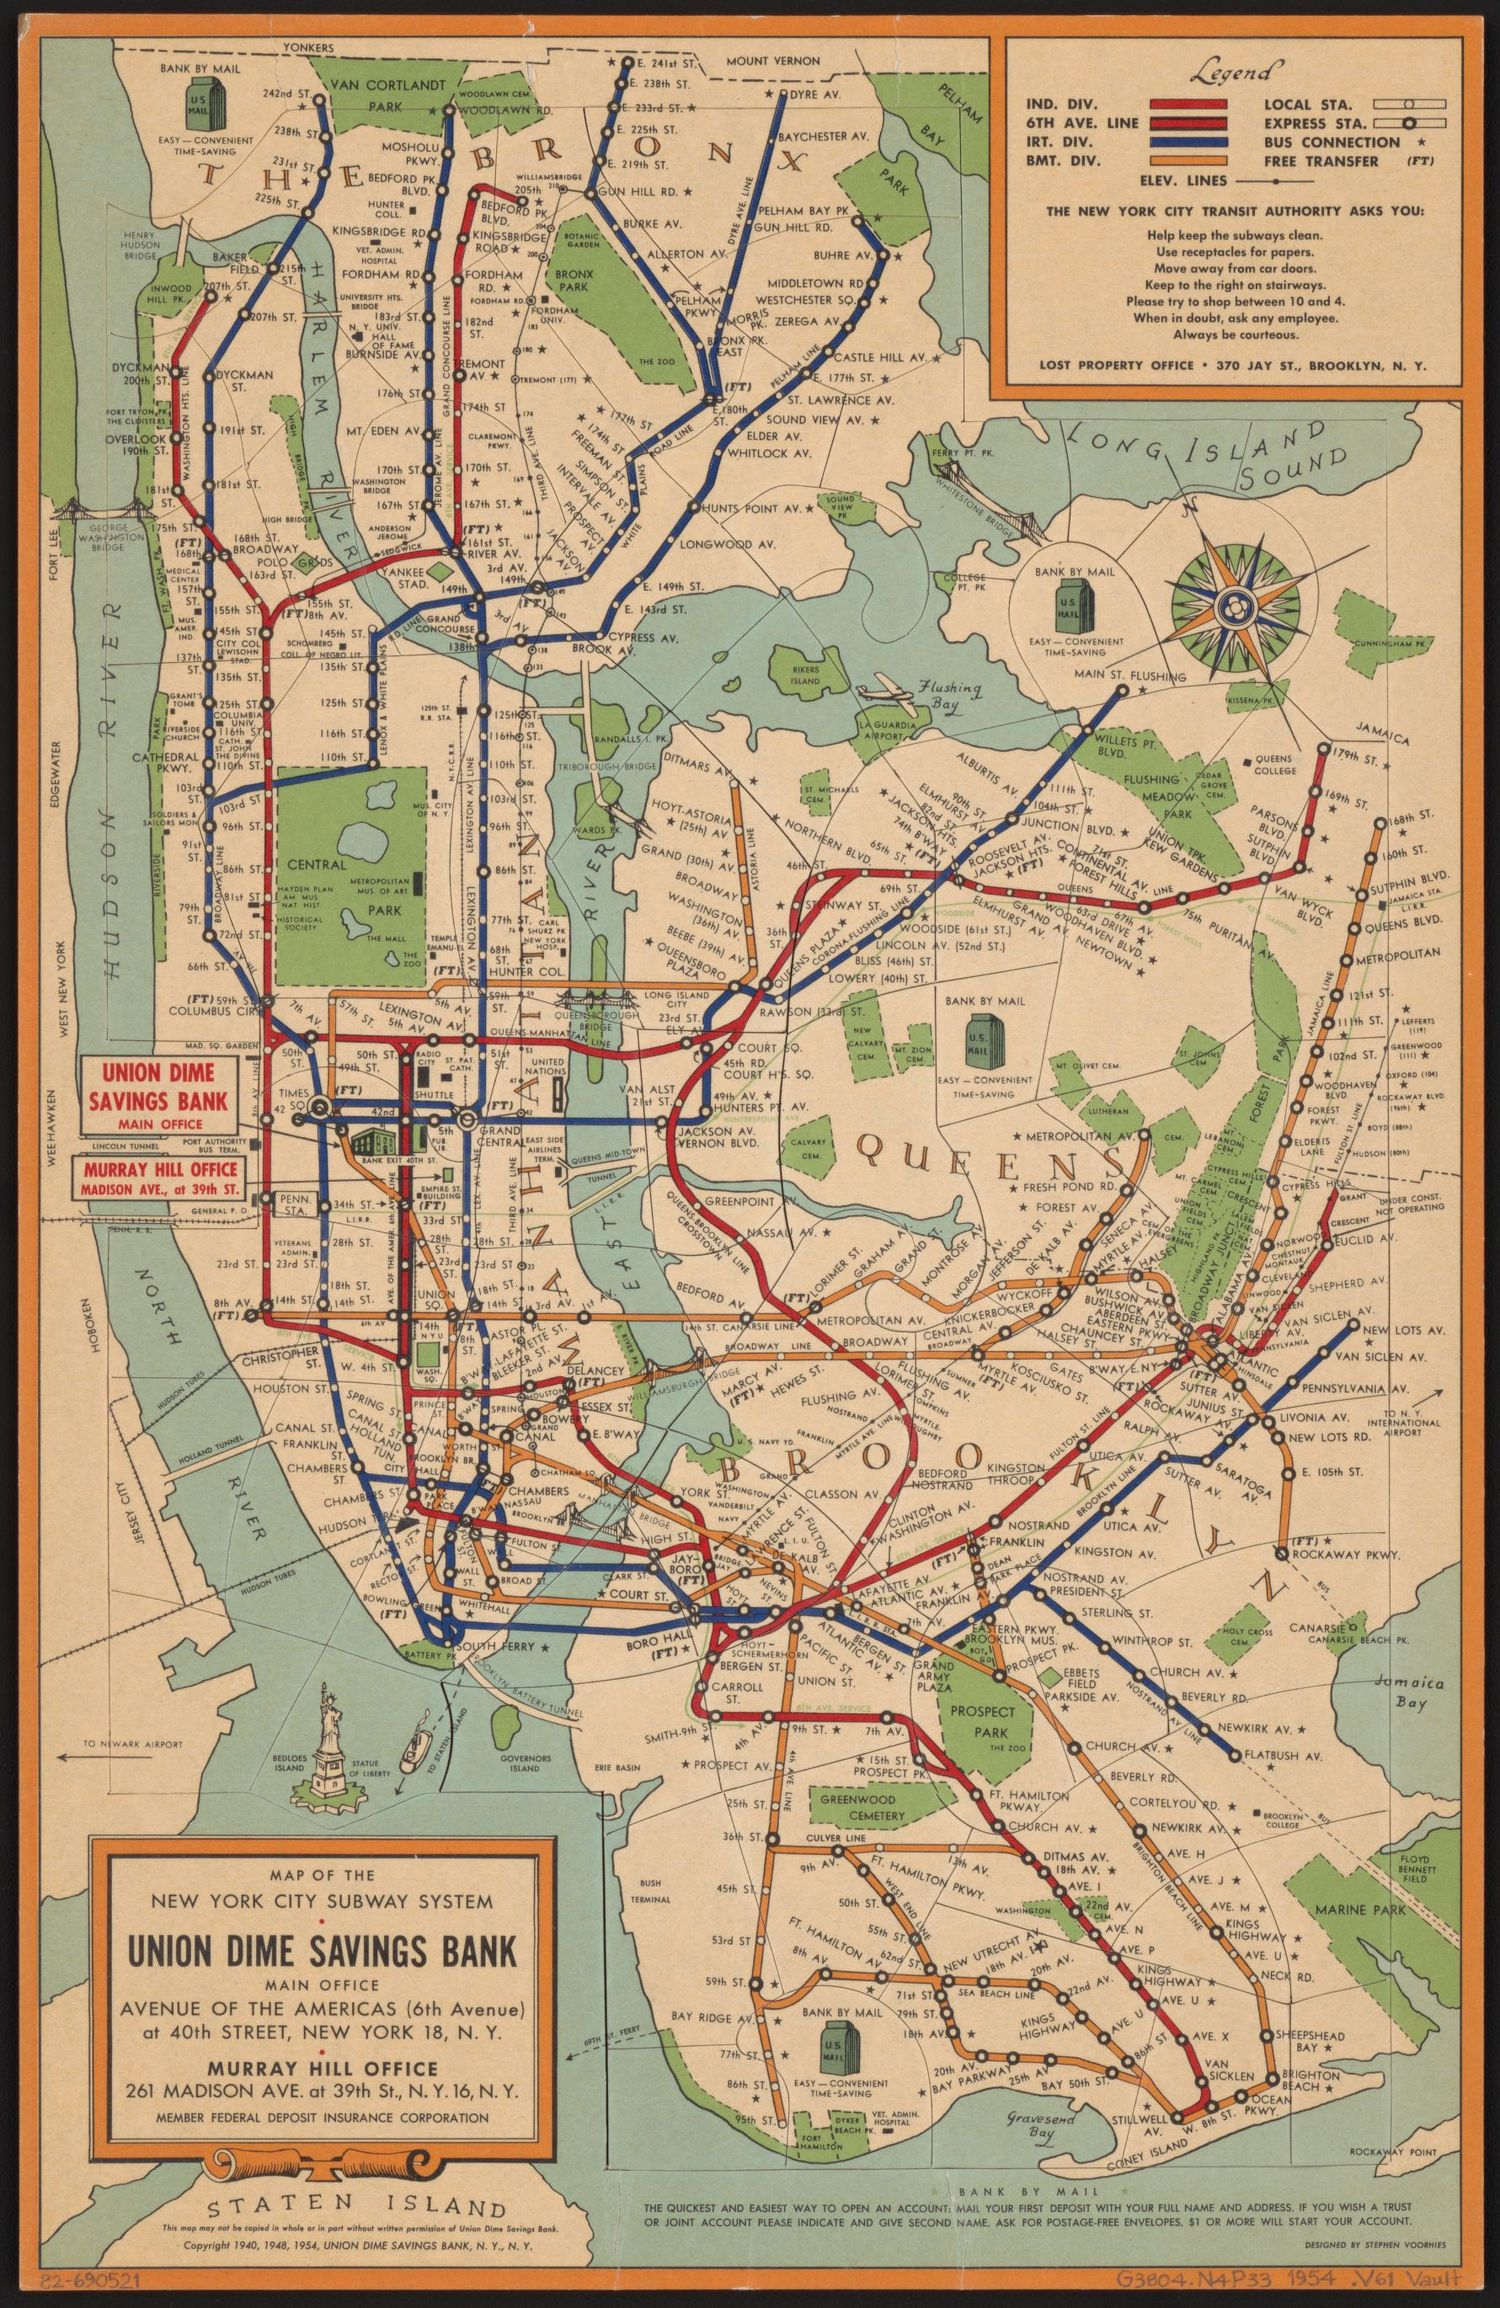 New York And Subway Map.Maps Vintage Map Shows New York City Subway System In 1954